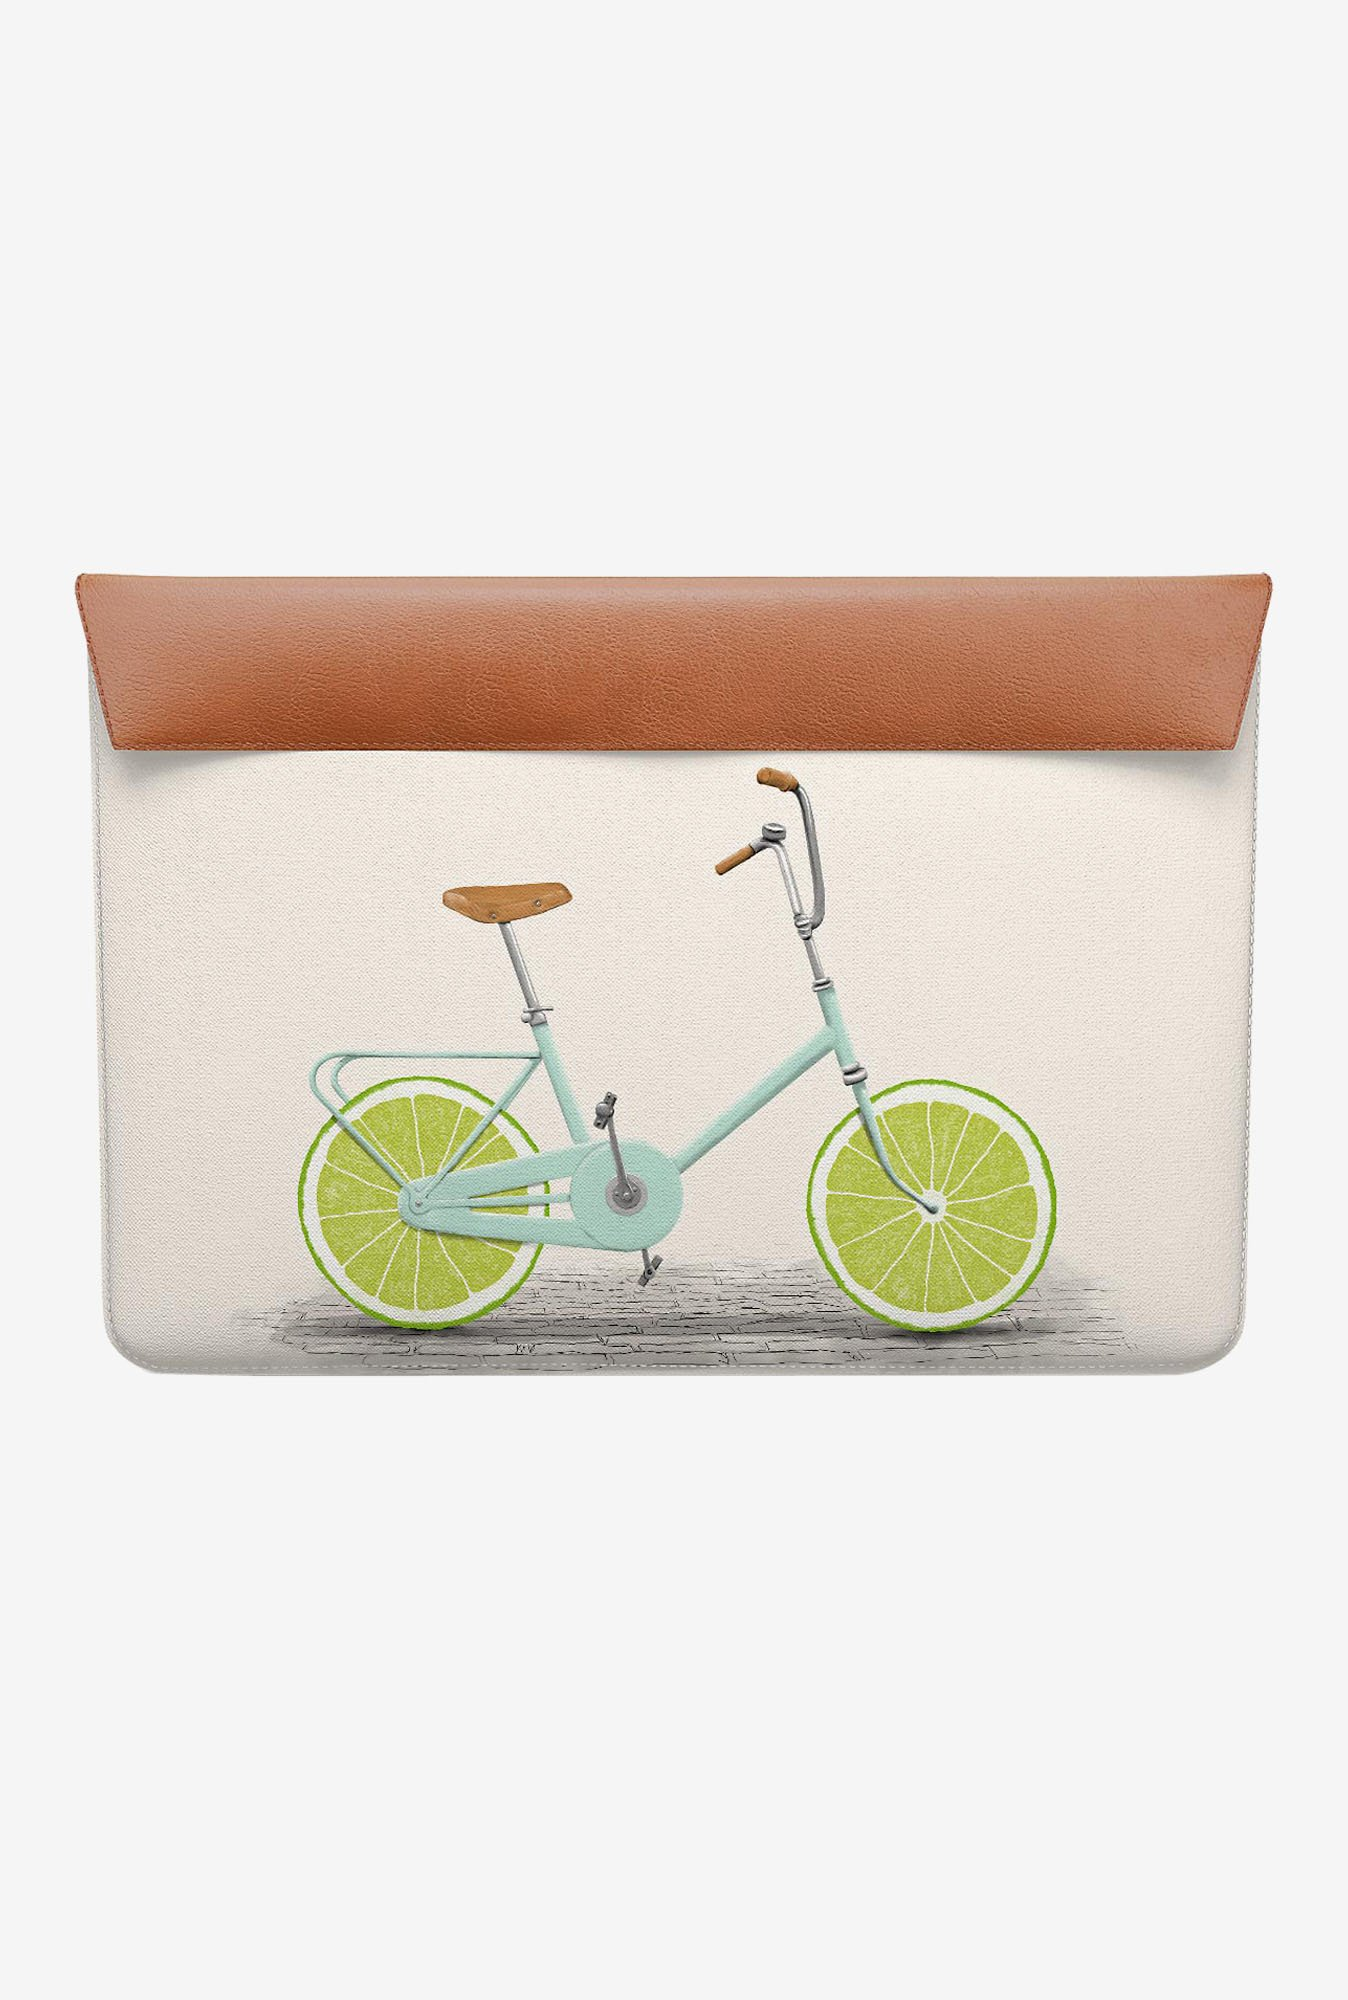 DailyObjects Lime Wheels MacBook Pro 15 Envelope Sleeve